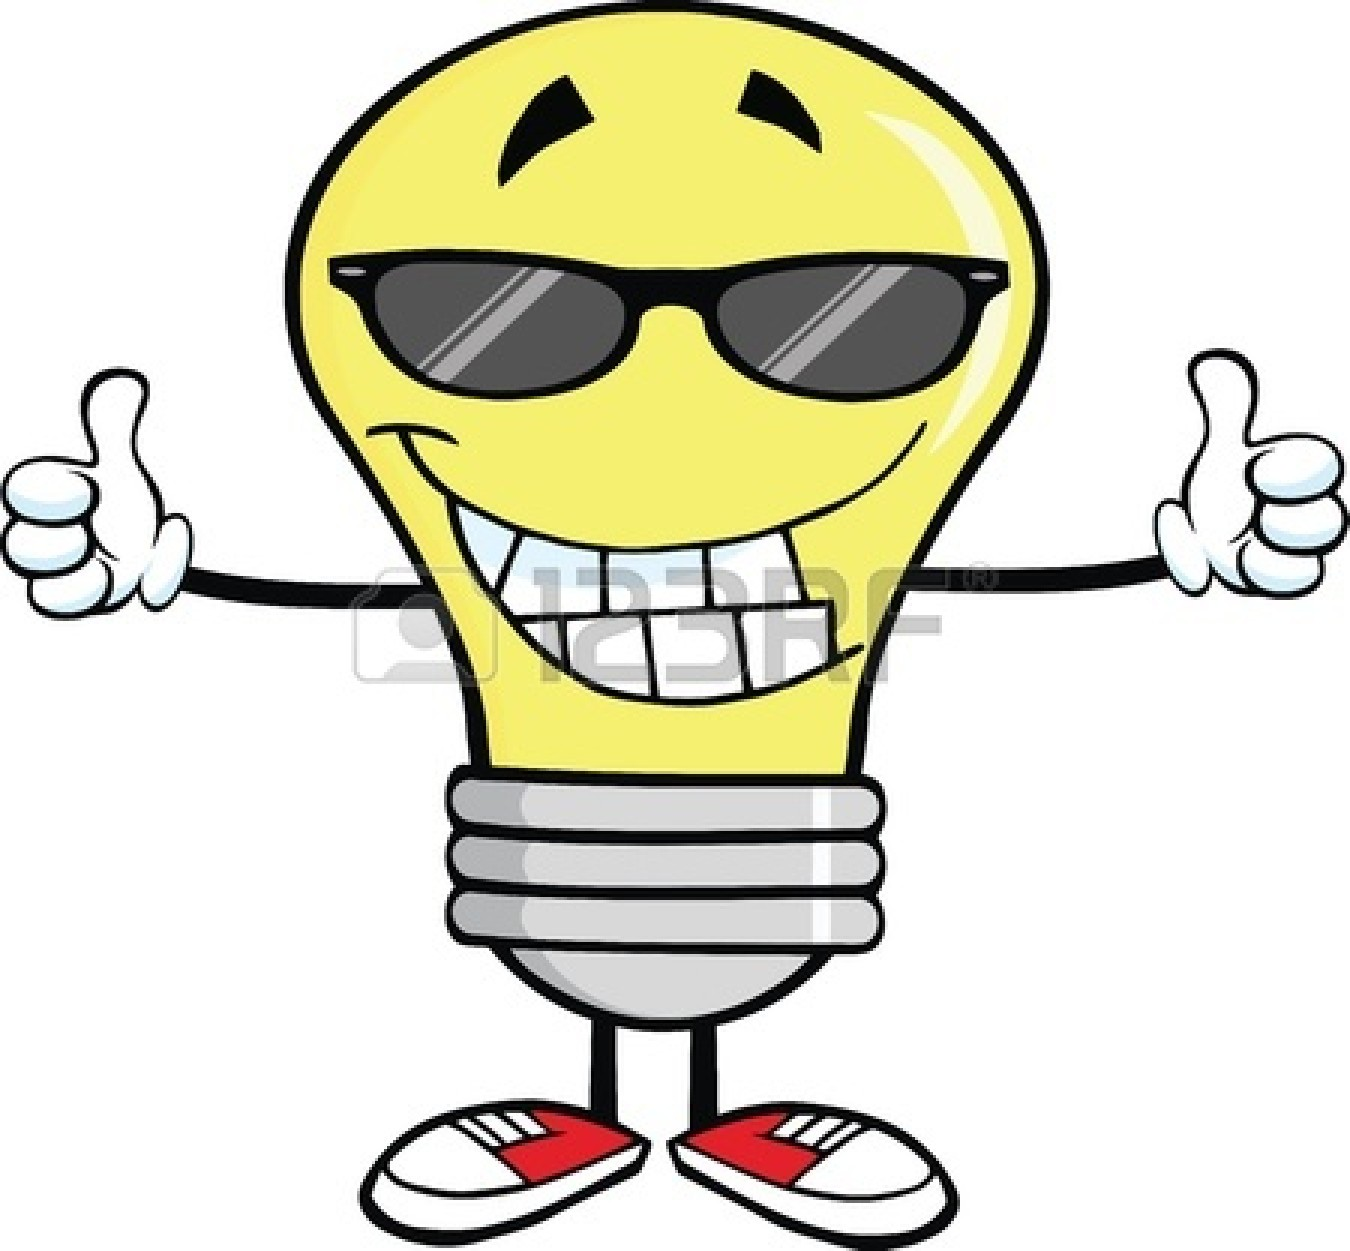 1350x1251 Smiley Face Wink Thumbs Up Clipart Panda